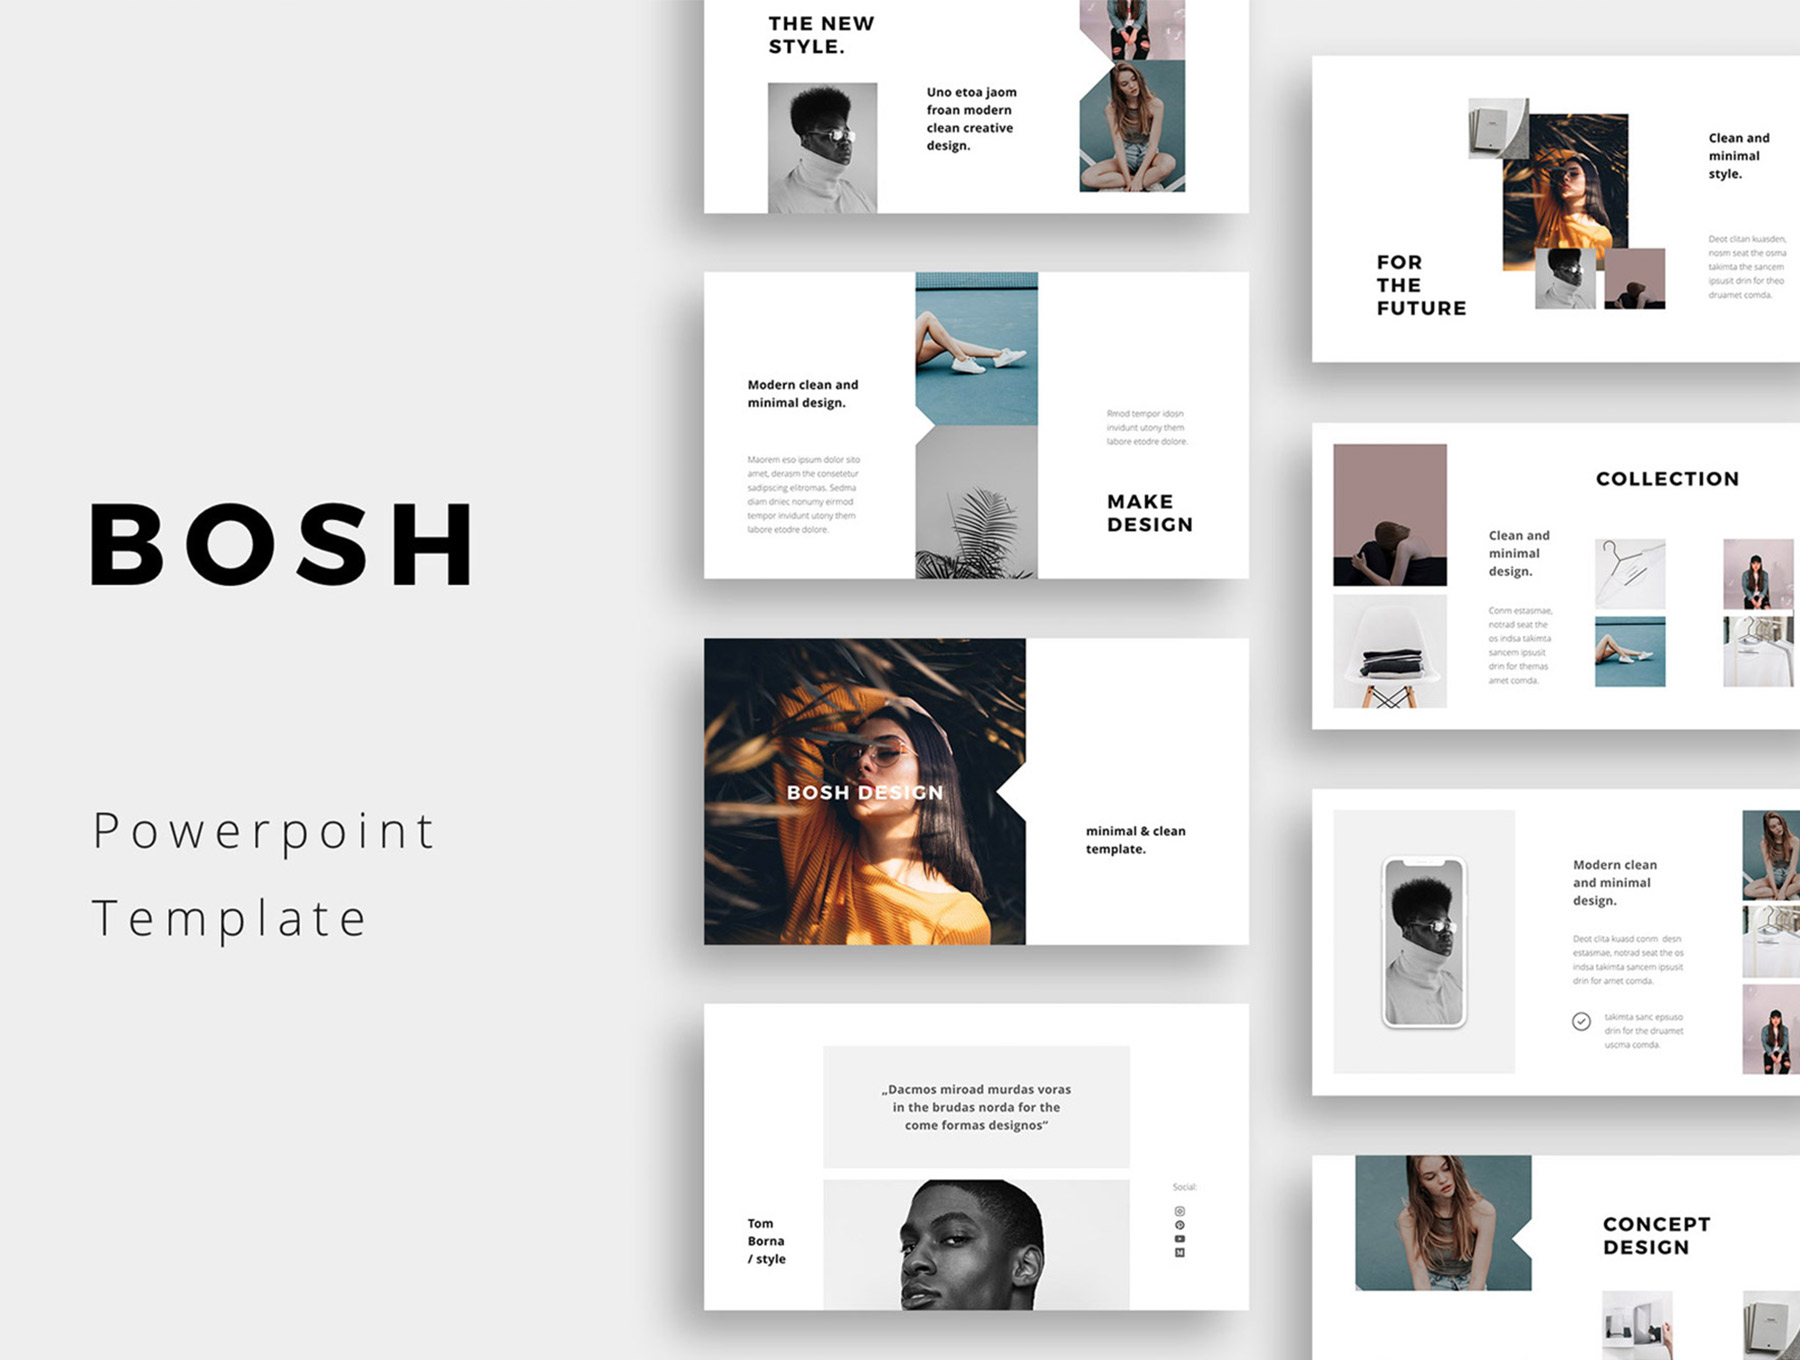 简约极致生活类Powerpoint演示模板BOSH - Powerpoint Template